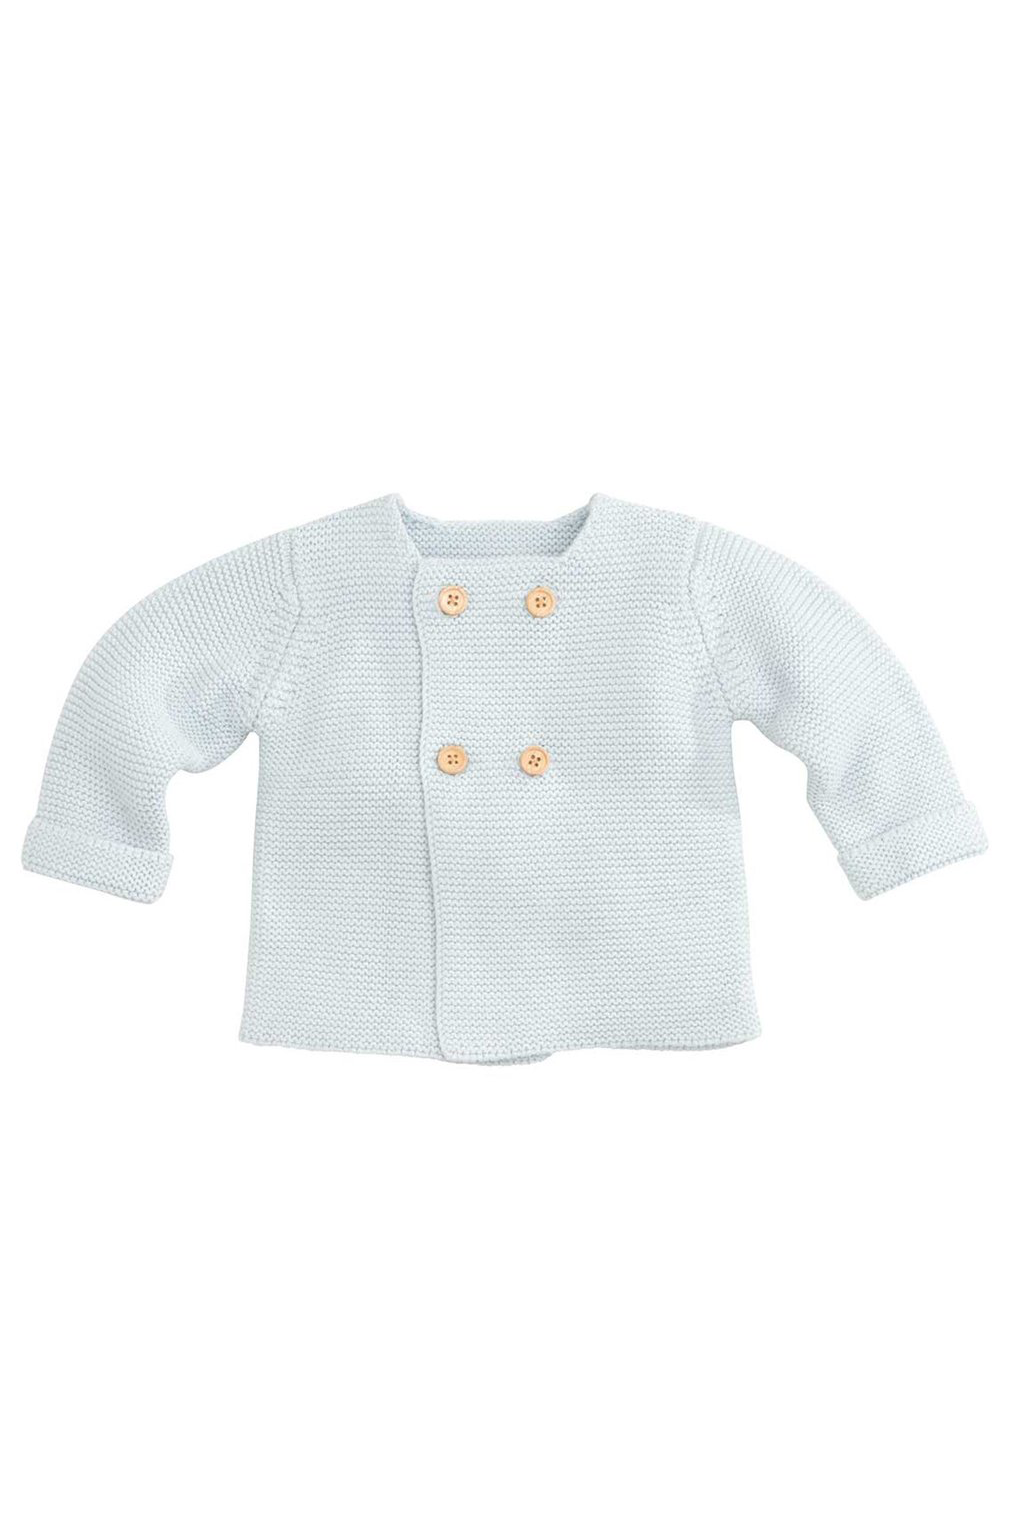 345d9718a Sofia and Finn Cardigan